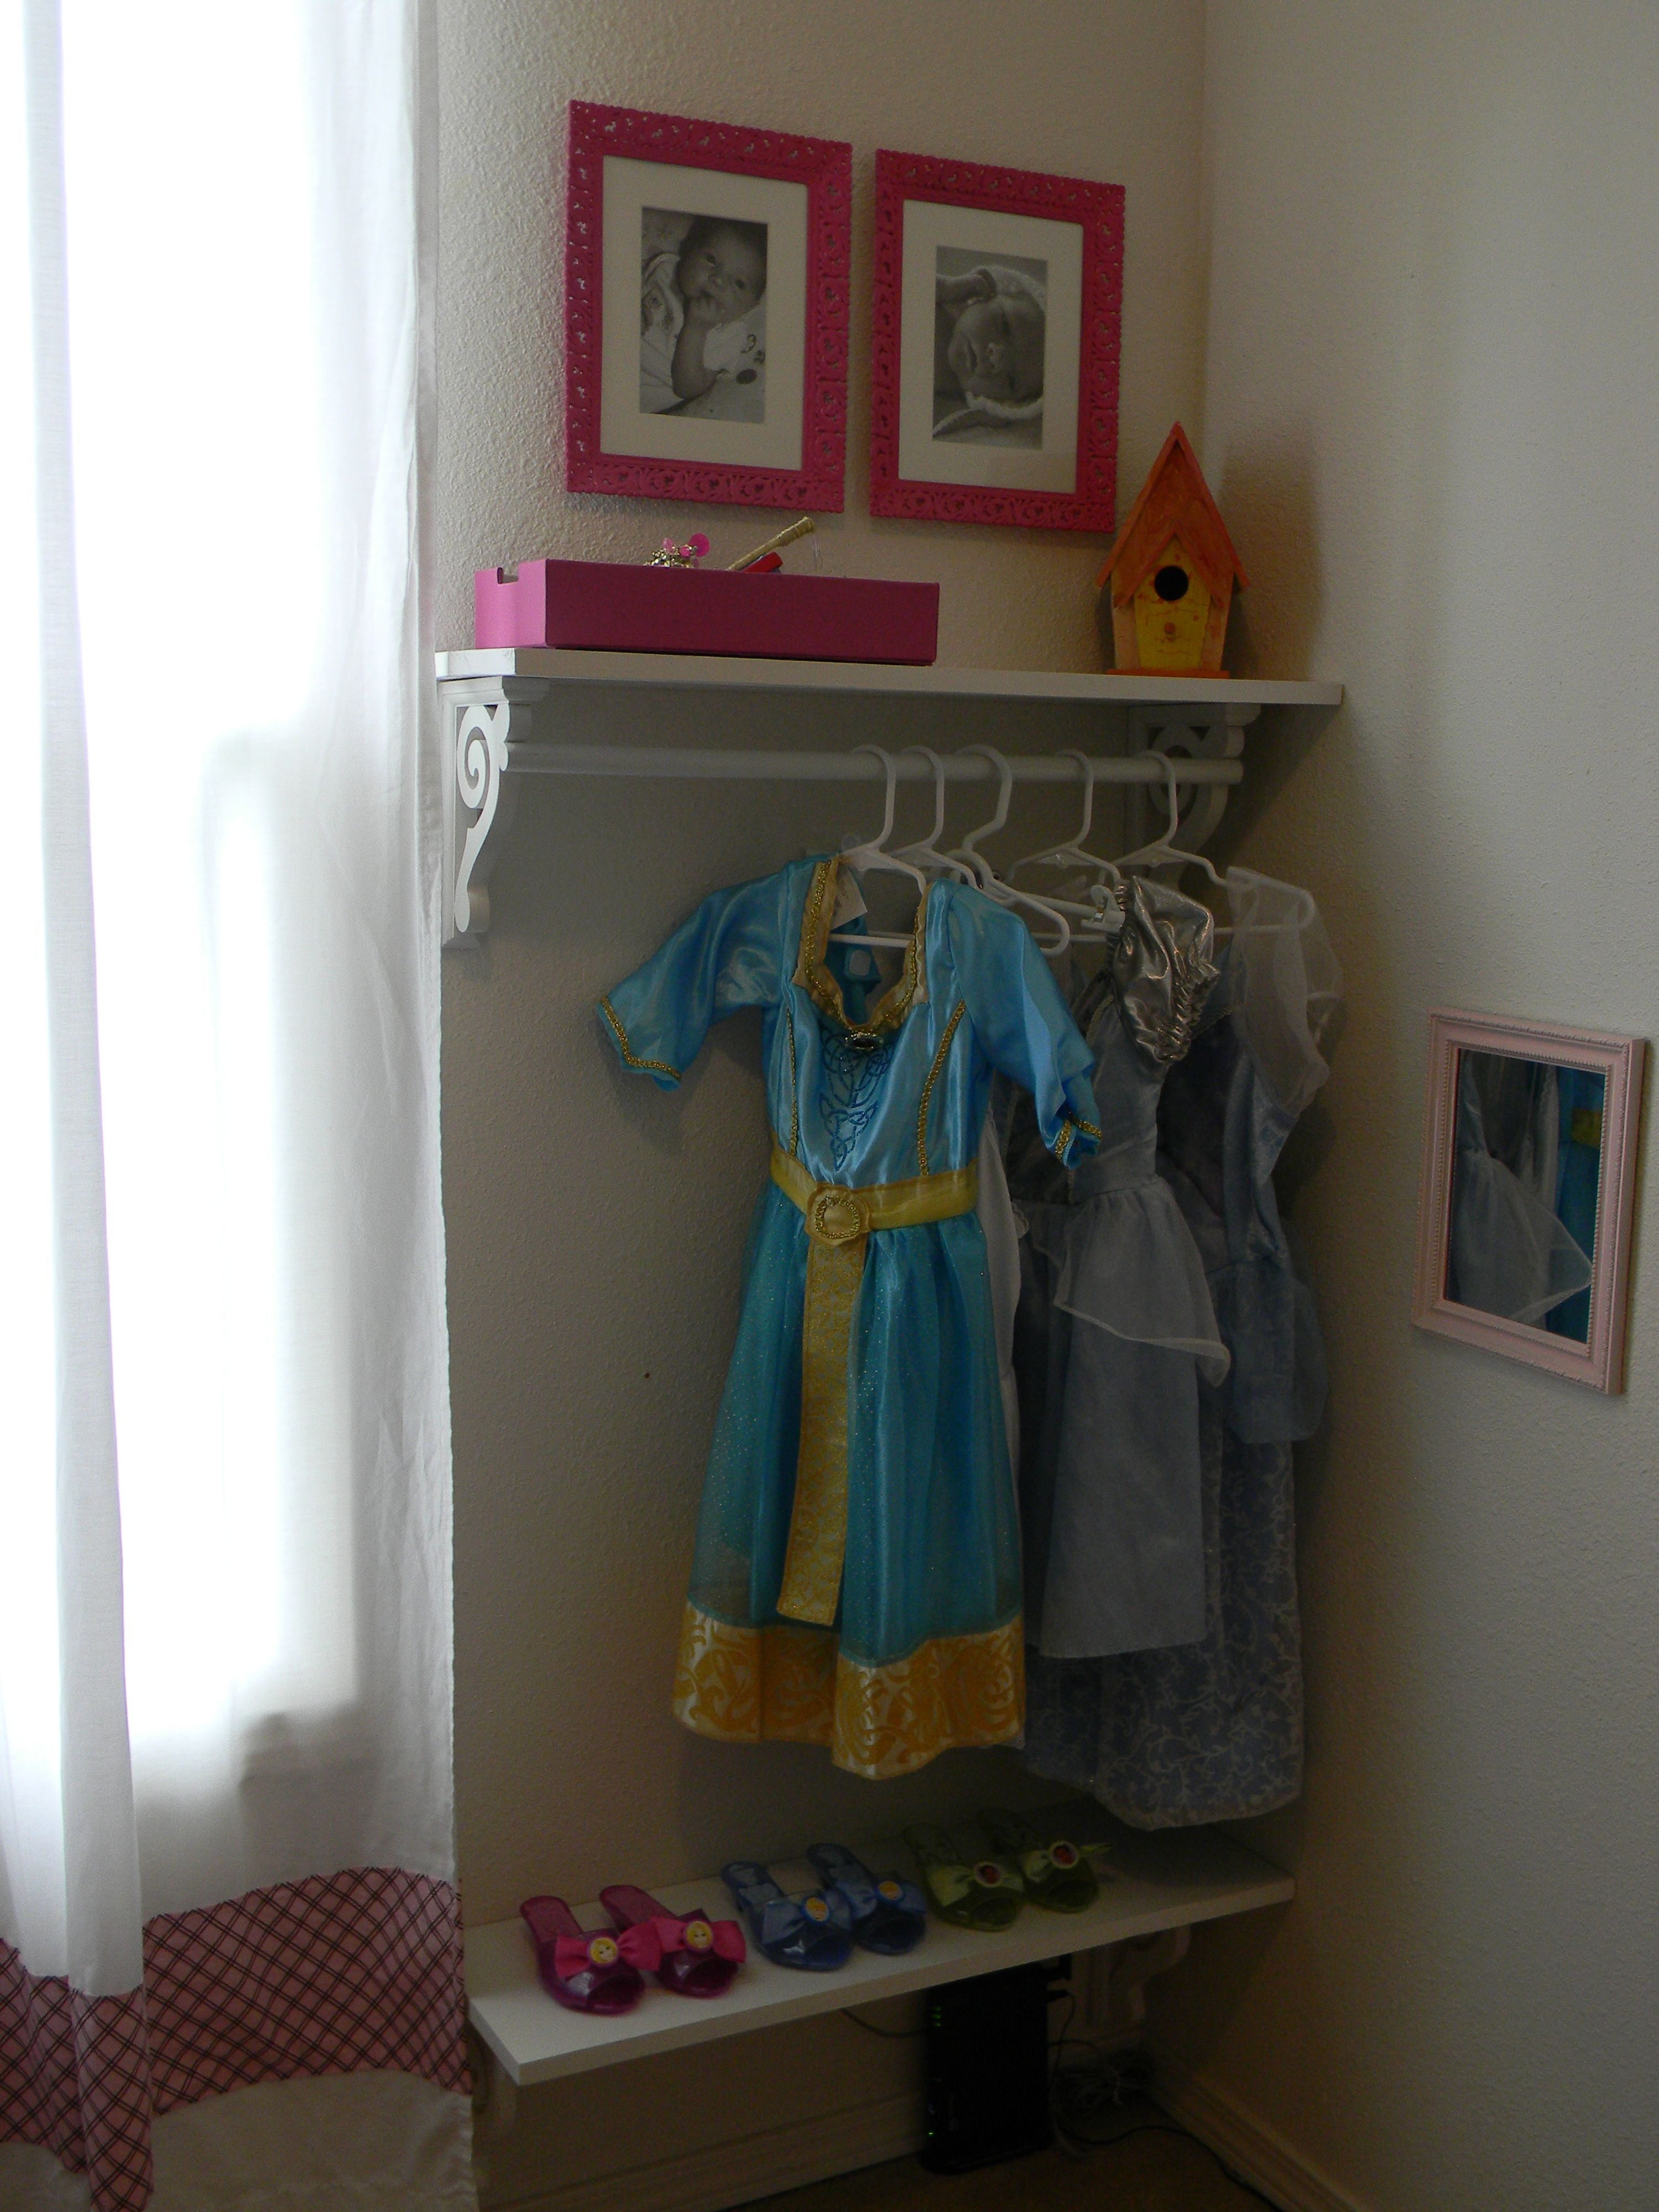 Diy Dress Up Storage Dress Up Area For Future Hopefully Or Just A Neat Idea For A Kid